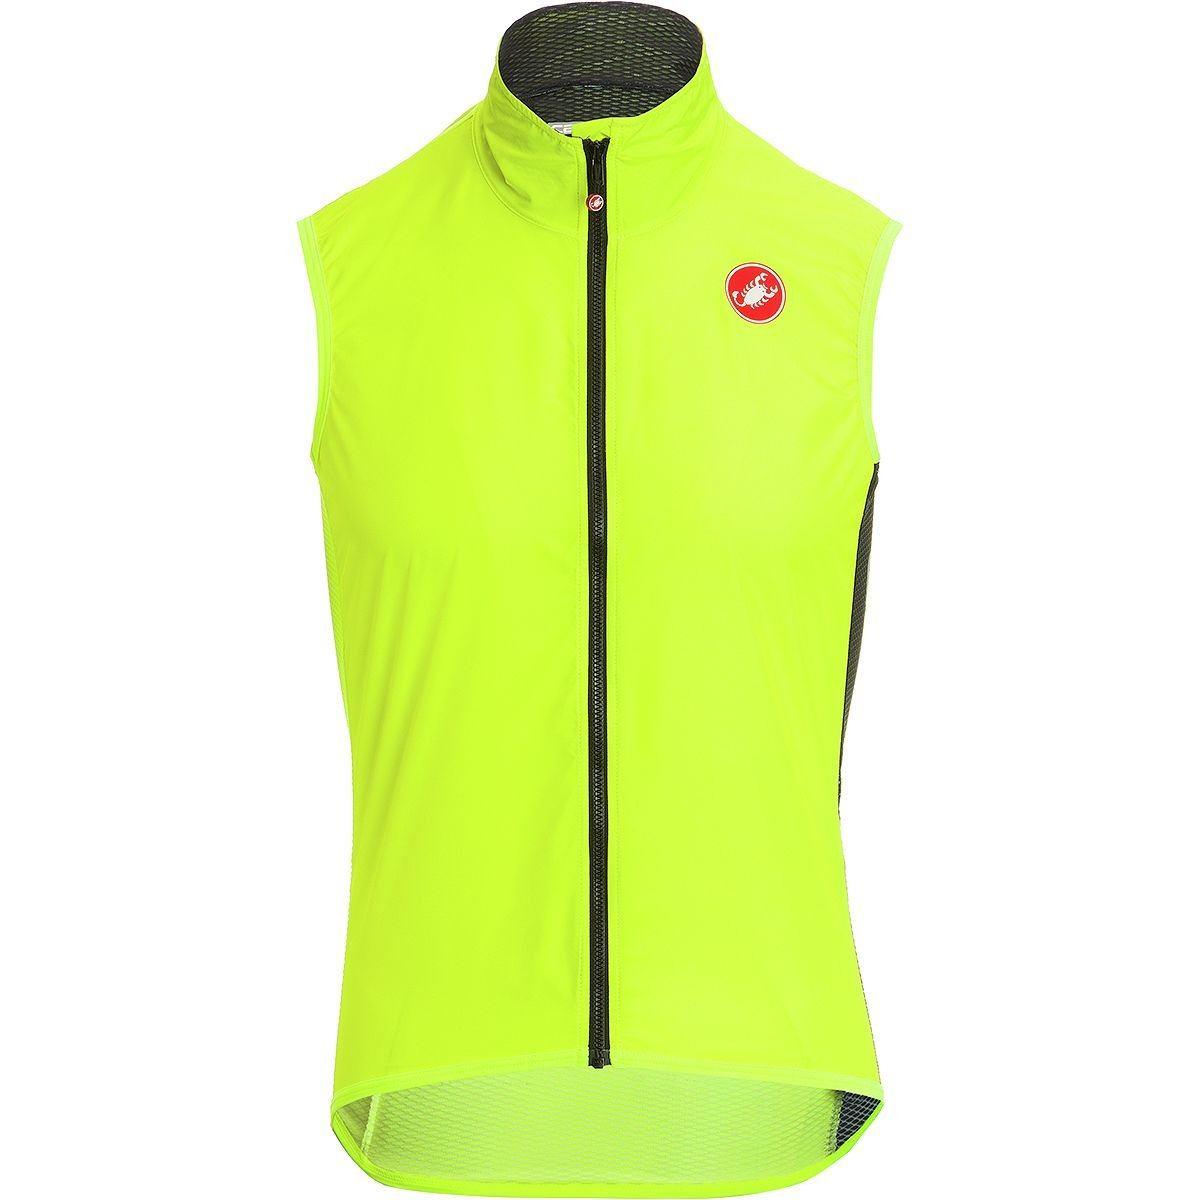 Castelli Pro Light Wind Vest - Men's Yellow Fluo, S by Castelli